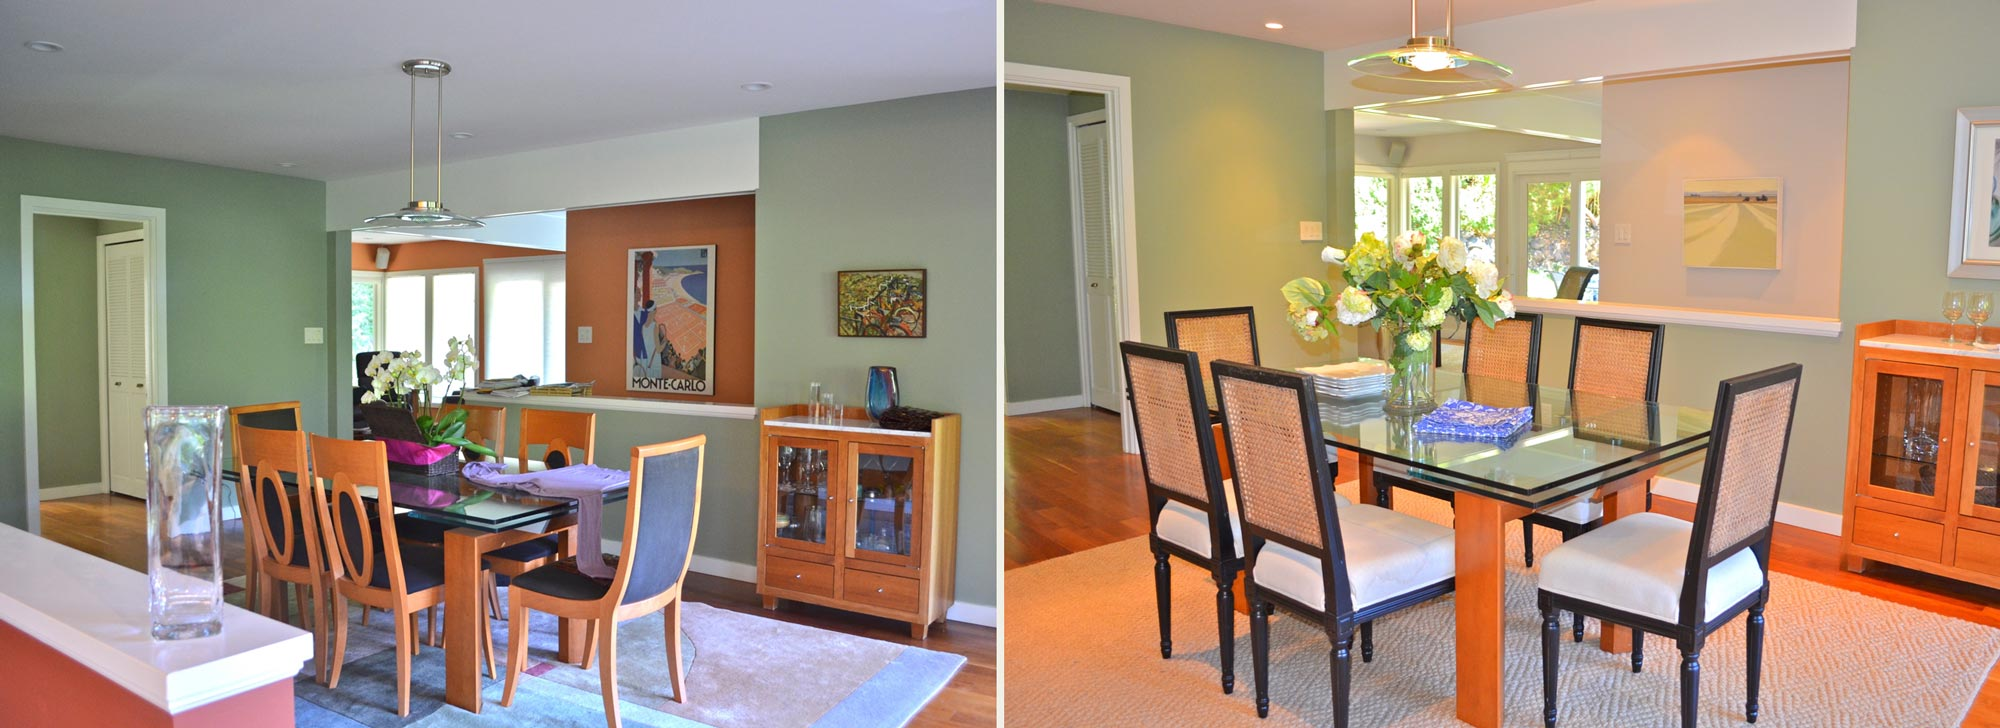 cary-nowell-staging-before-after-15.jpg